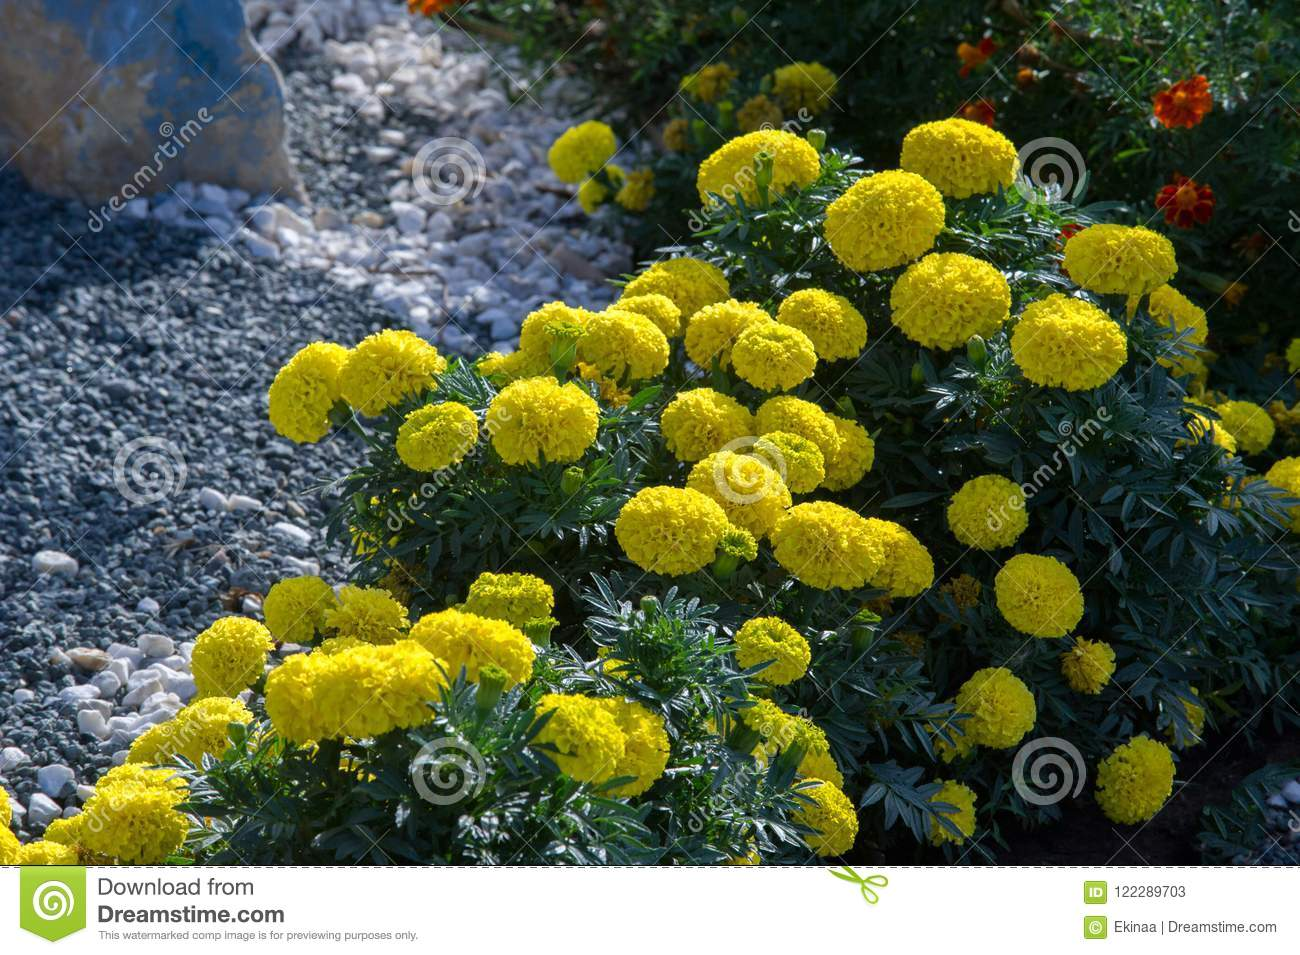 Marigolds Flowers A Plant Of The Daisy Family Typically With Y